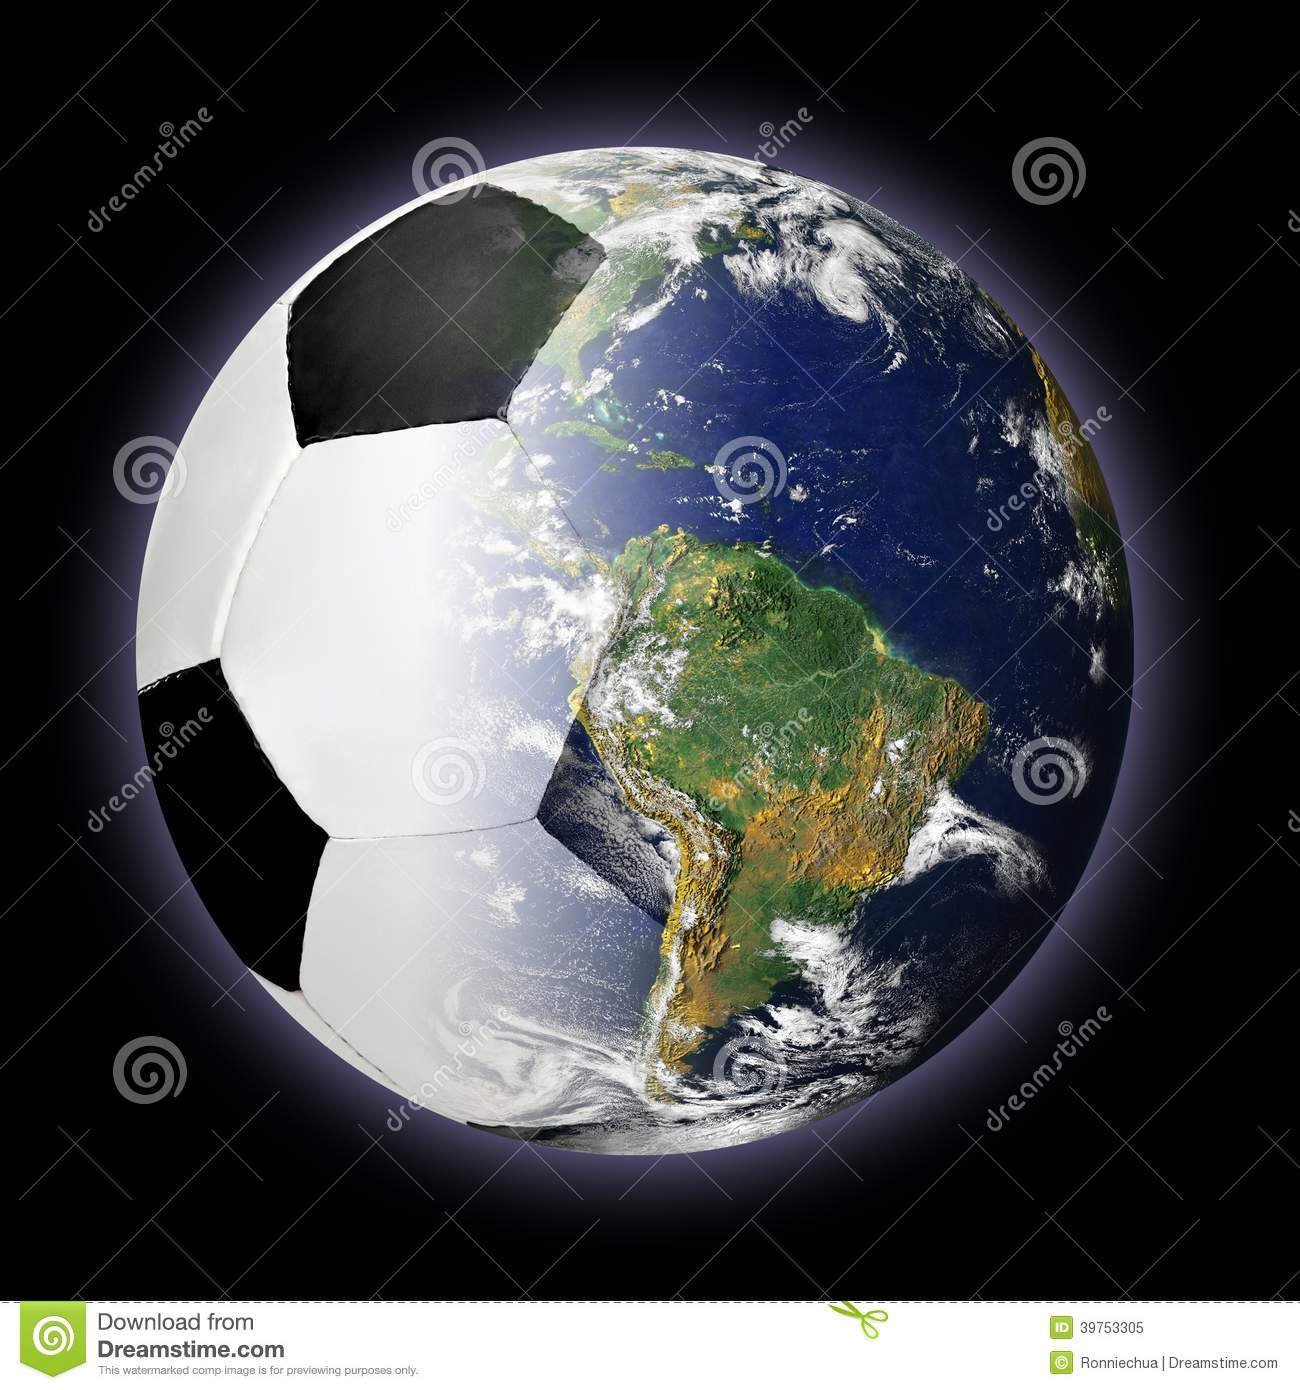 soccer ball and planet earth merged together stock image